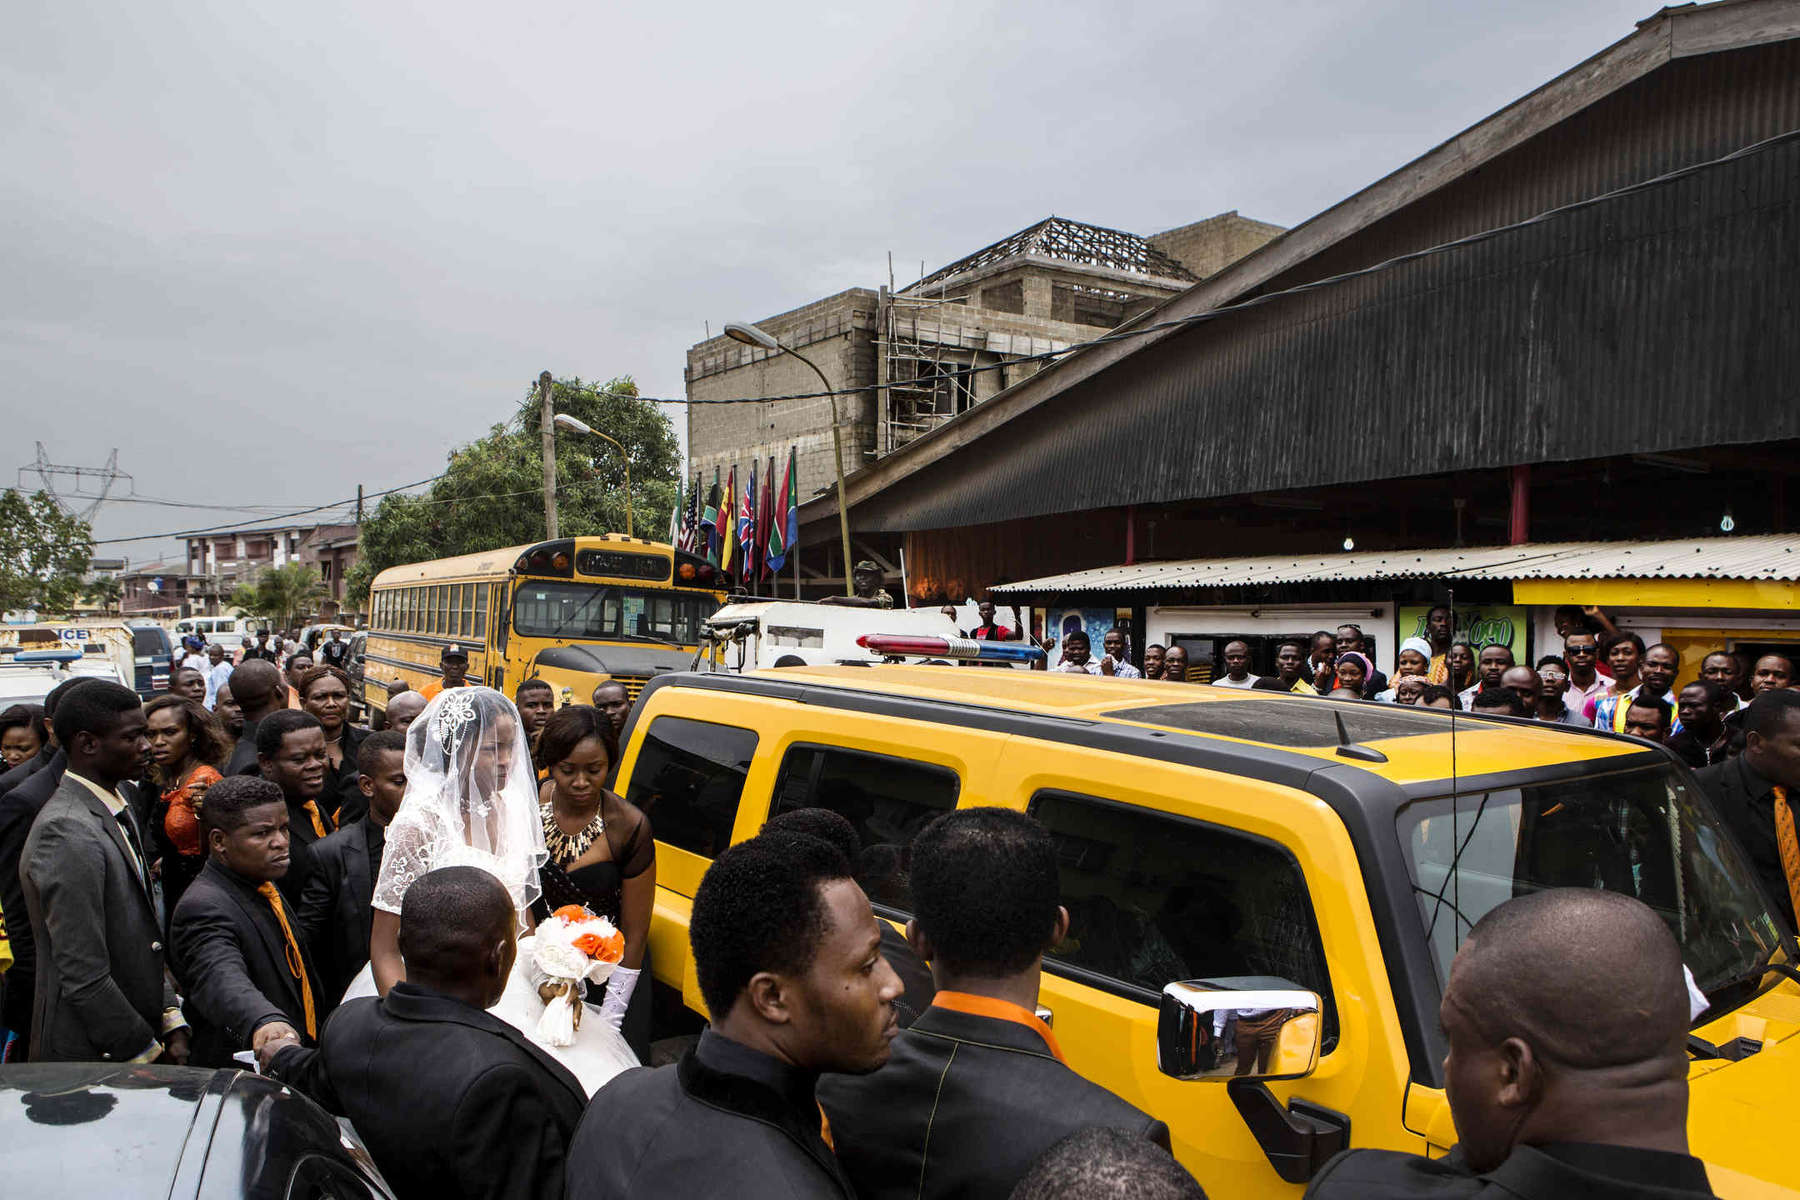 When the pastor of a mega church in a slum in Lagos got married on April 28, his bride arrived in a yellow Hummer.